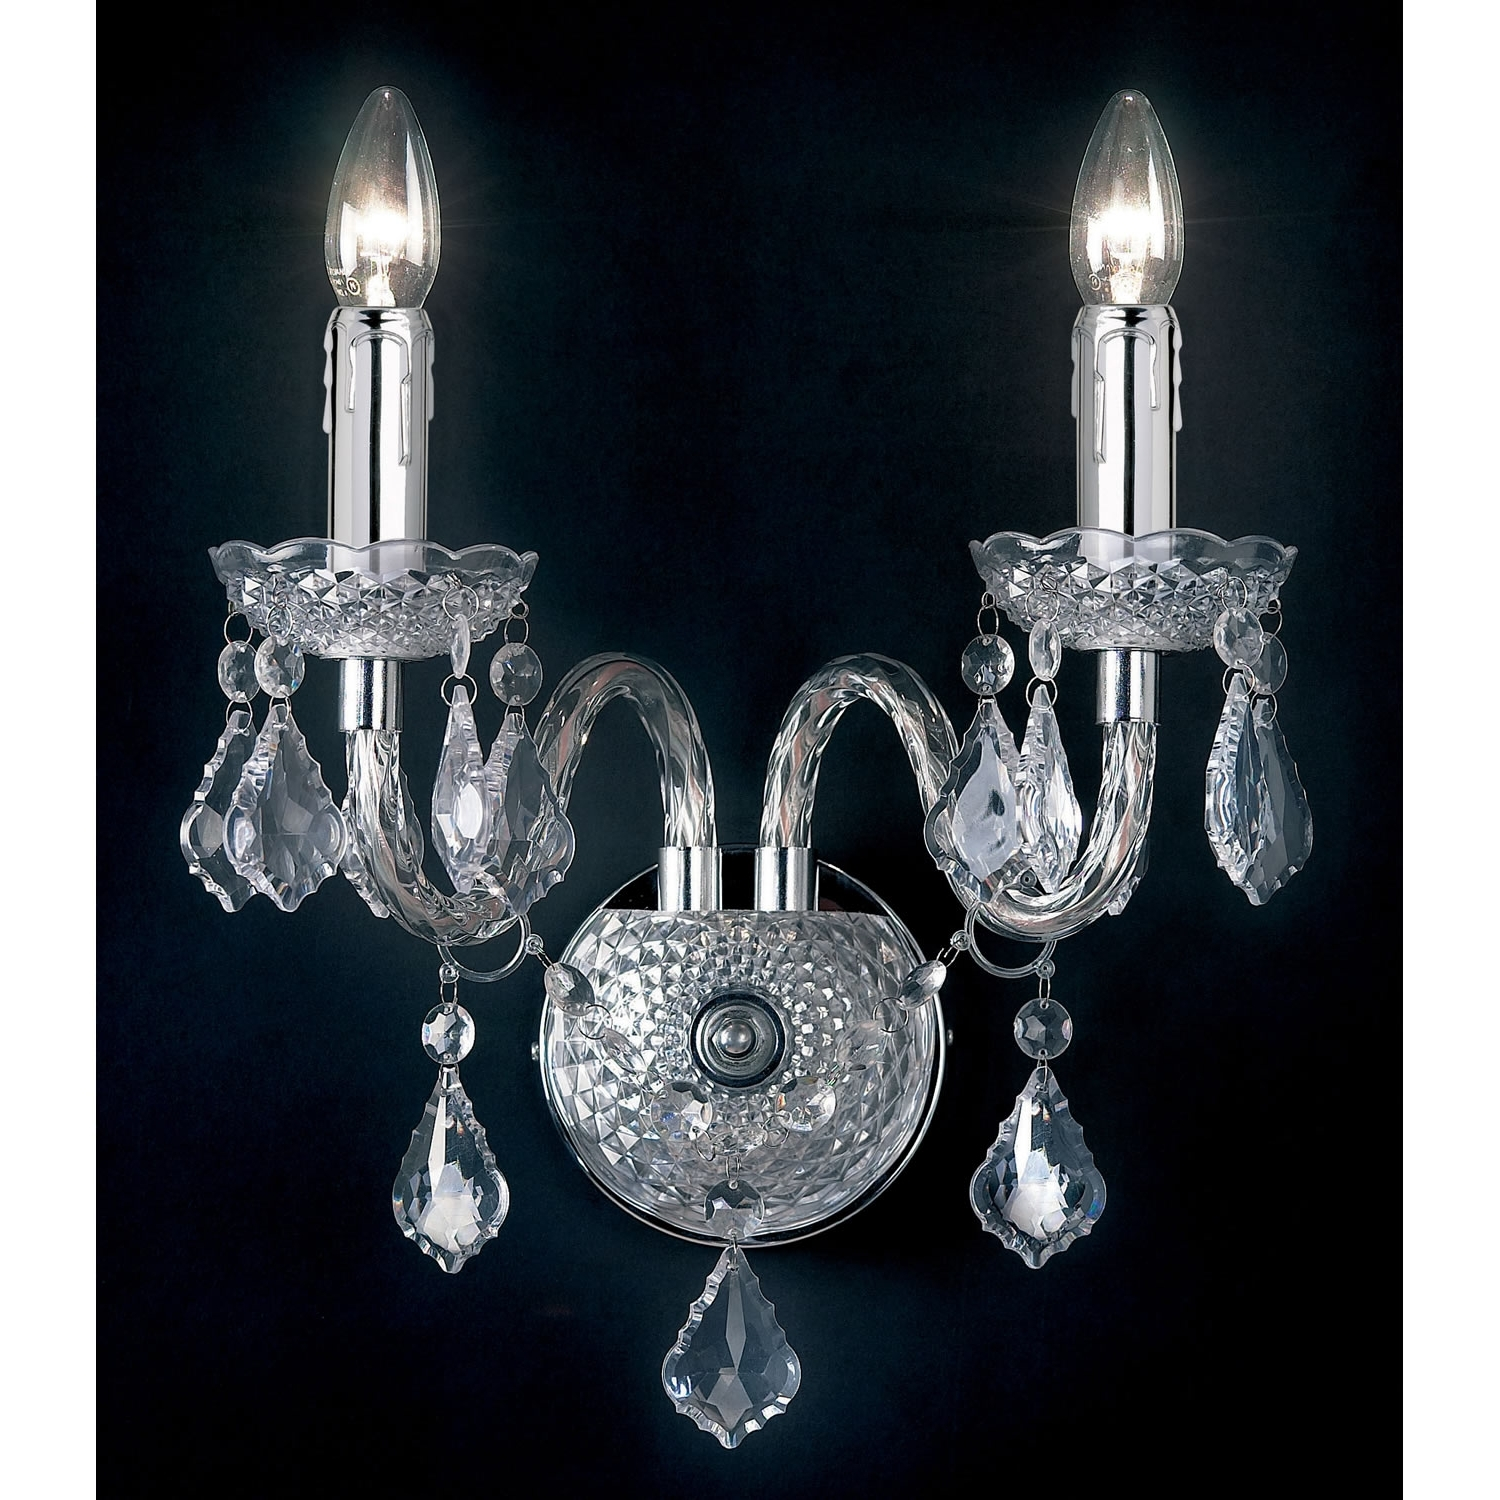 Endon Lighting 2 Light Wall Chandelier In Clear E2 80 93 Next Day For Well Known Chandelier Wall Lights (View 7 of 20)